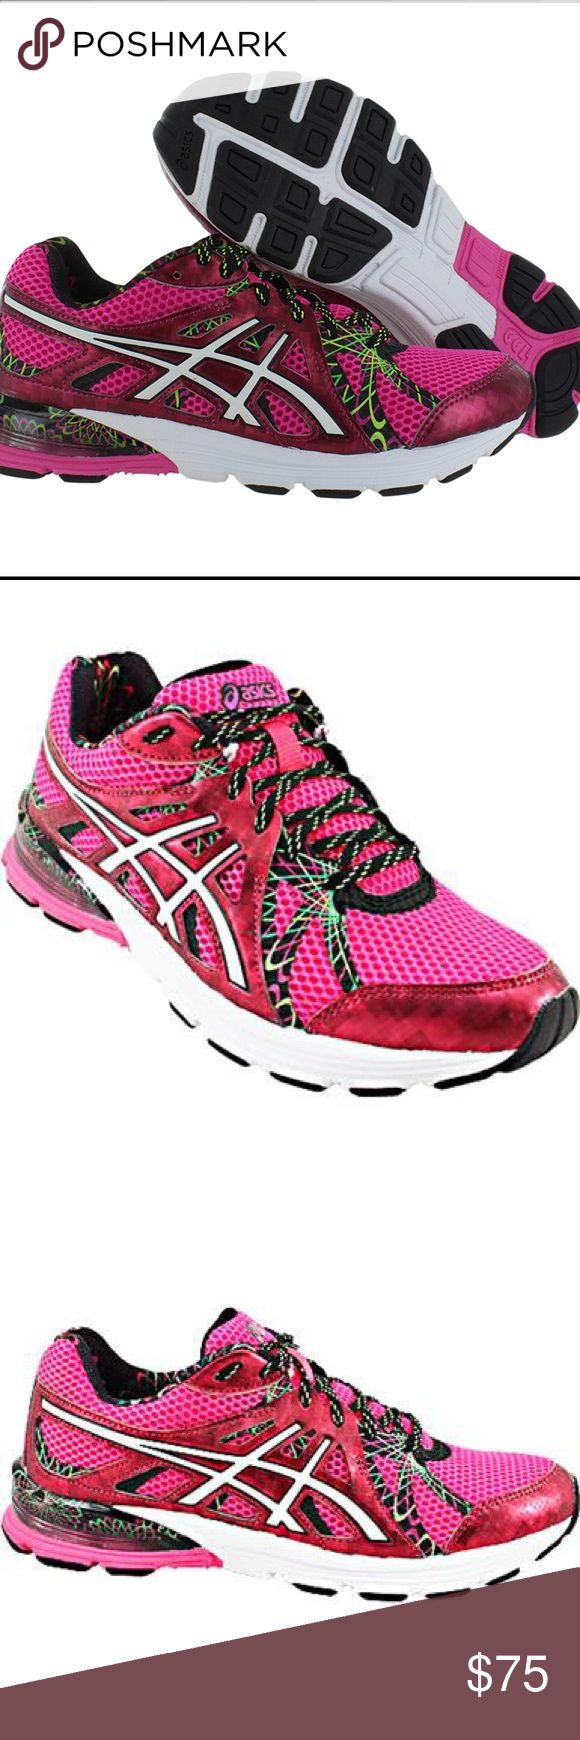 Asics Gel-Preleus Running Women's Shoes Size Asics Gel-Preleus Women's Running Shoes. With just the right combination of cushion and support, the bold Gel-Preleus running shoes by Asics match your pace, mile after mile. Ideal for neutral, high-mileage runners, these brightly colored trainers offer enhanced cushioning to soften impact and absorb shock. For a workout buddy that you can depend on, lace up these reliable Asics and experience the ultimate running comfort.  New with Tags No Box…